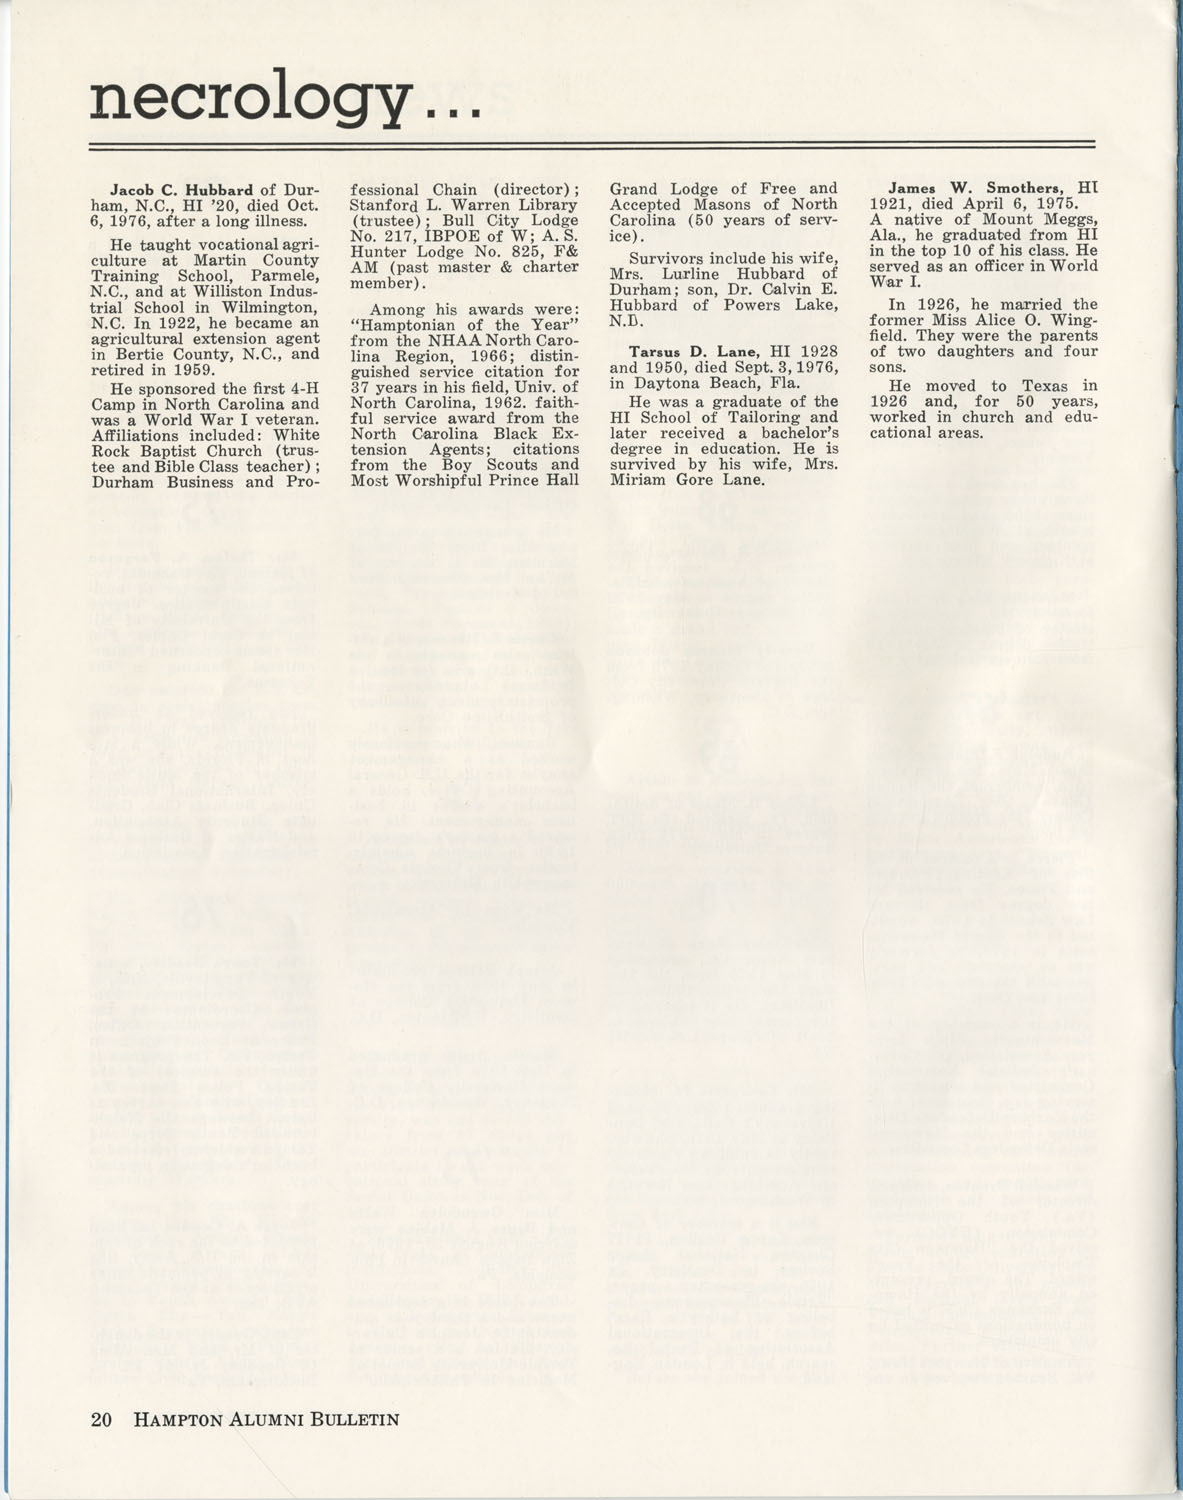 The Hampton Bulletin, Winter 1977, Page 20